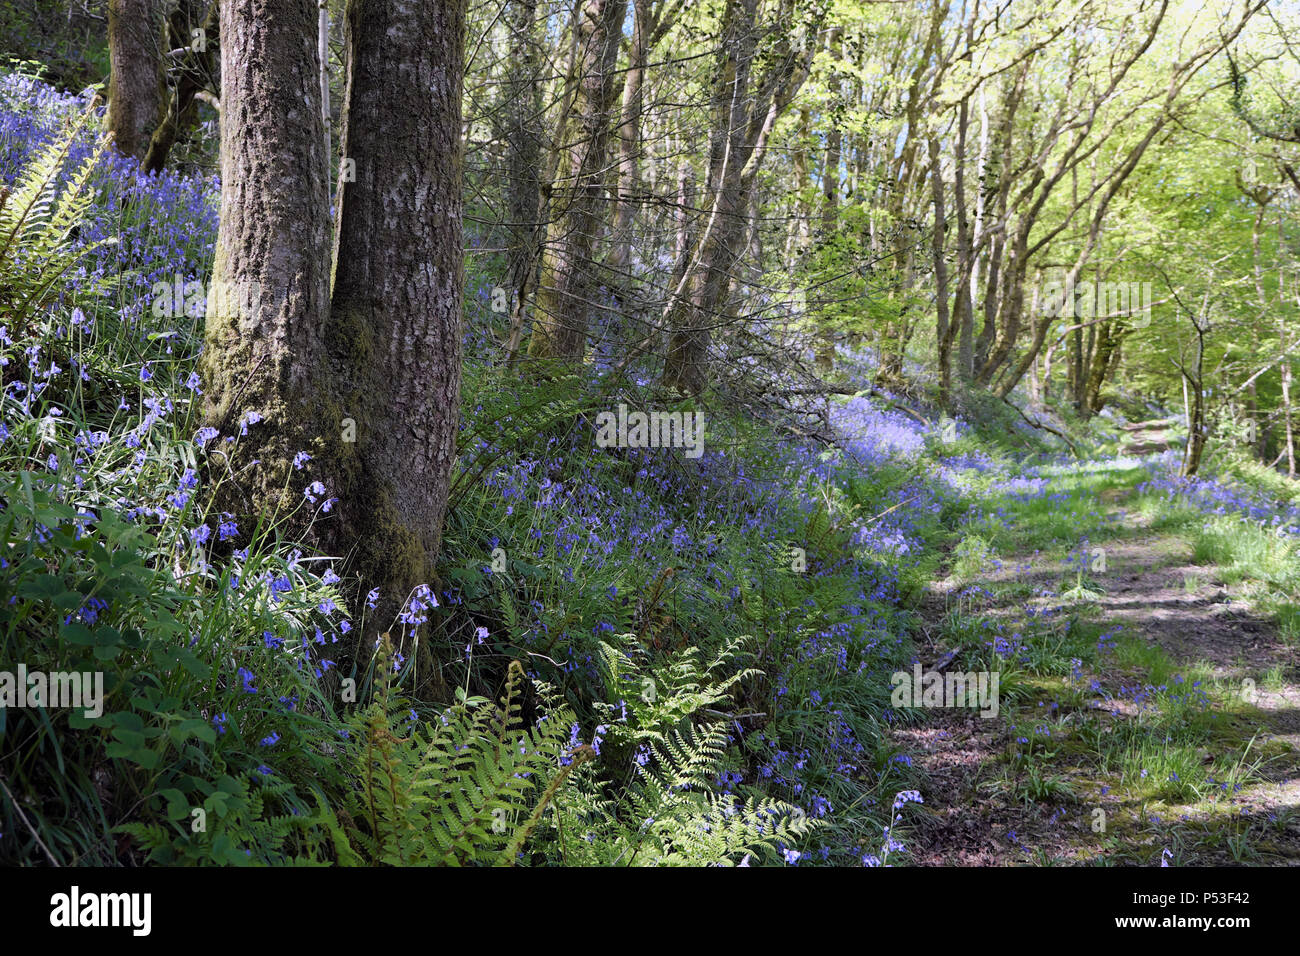 View of bluebells growing in a woodland on a slope by a rural track in the woods in spring Wales UK  KATHY DEWITT Stock Photo